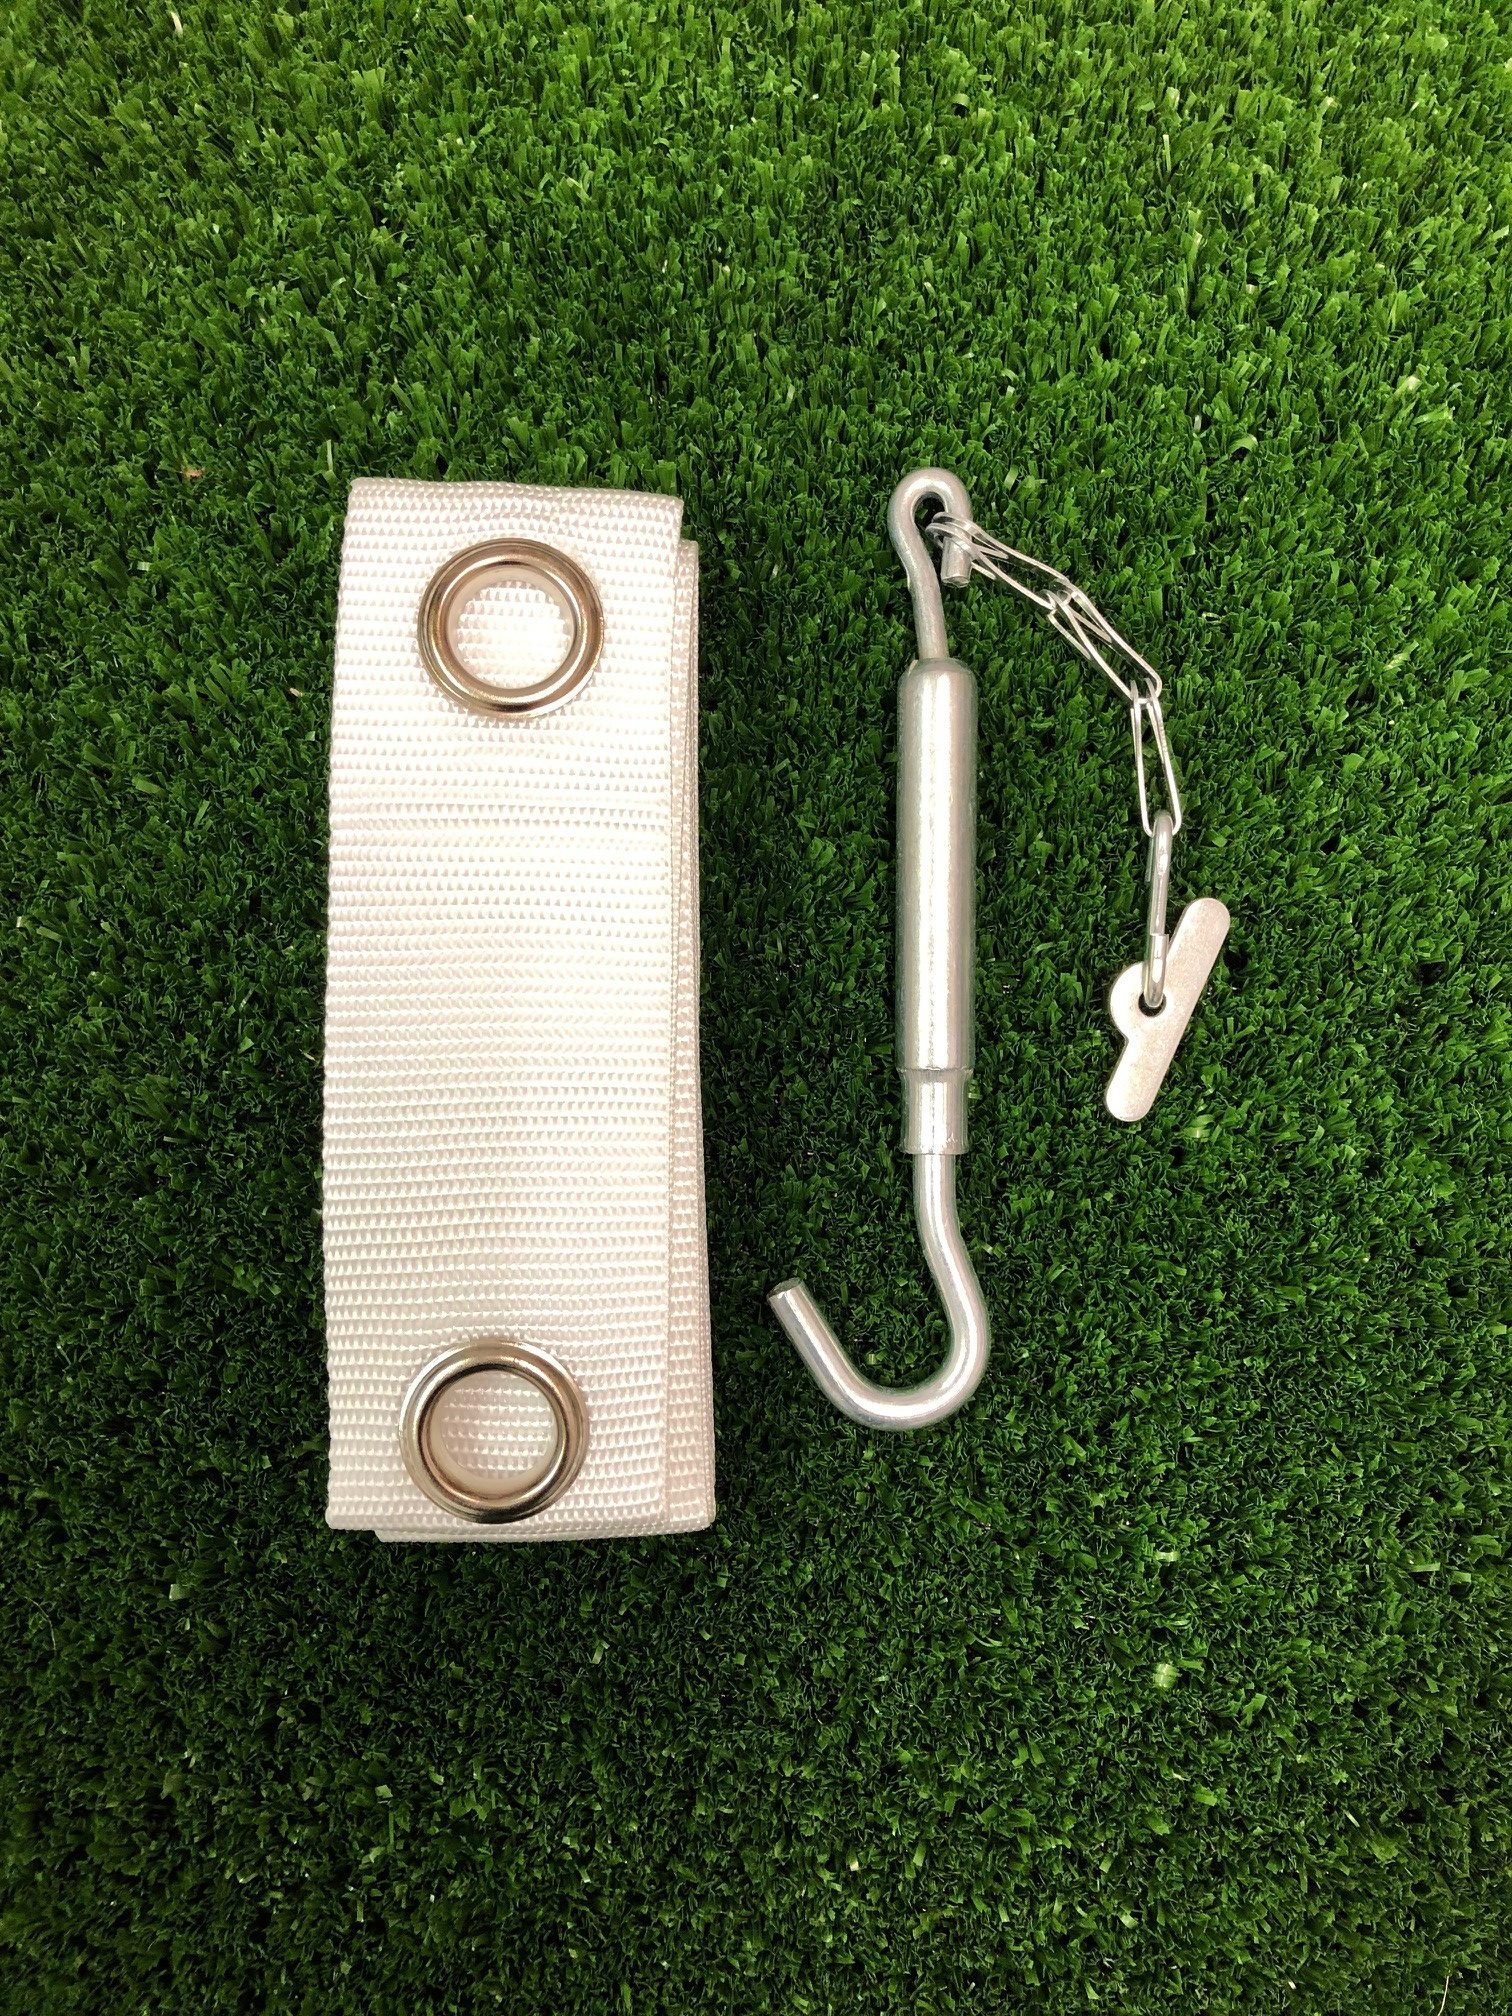 Tennis Centre band and Galvanized swivel